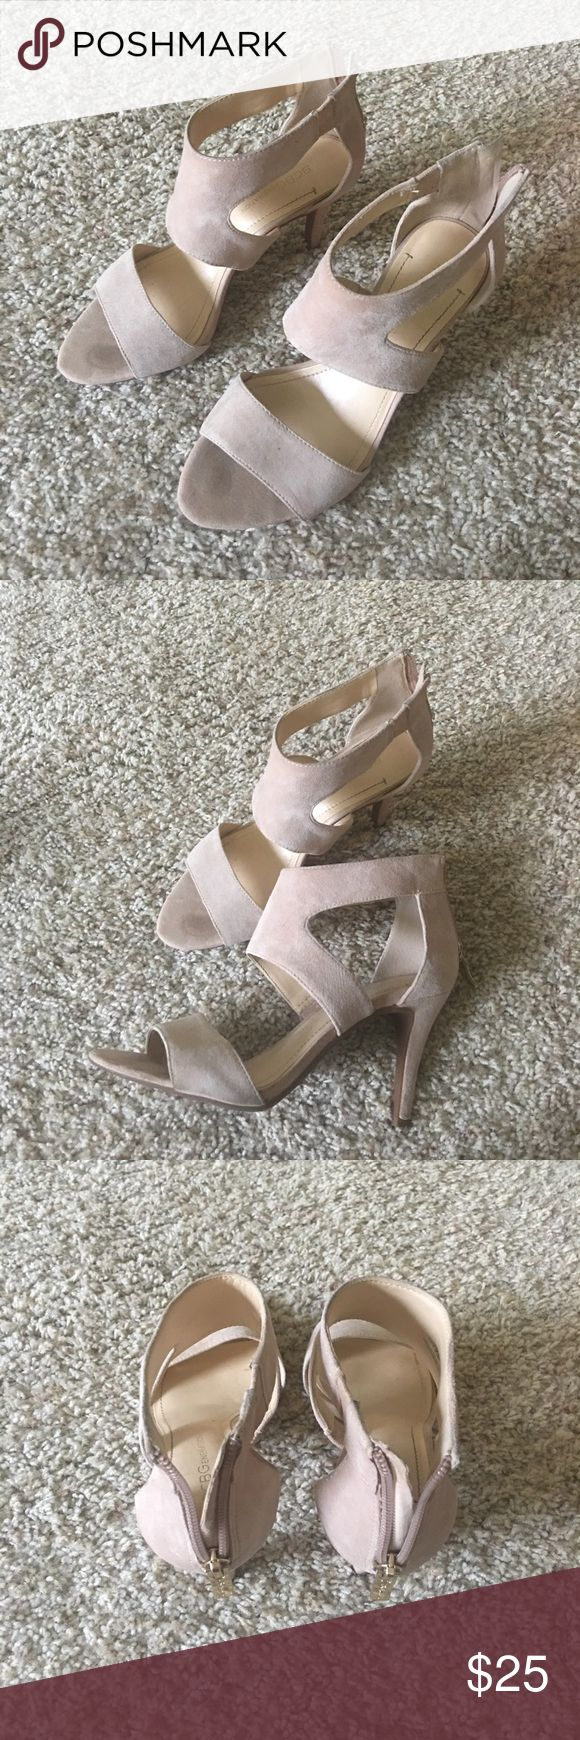 BCBG high heels summer shoes Size 6, bought from DSW, loving this shoes, only wore twice. Perfect condition. Very beautiful BCBGeneration Shoes Heels